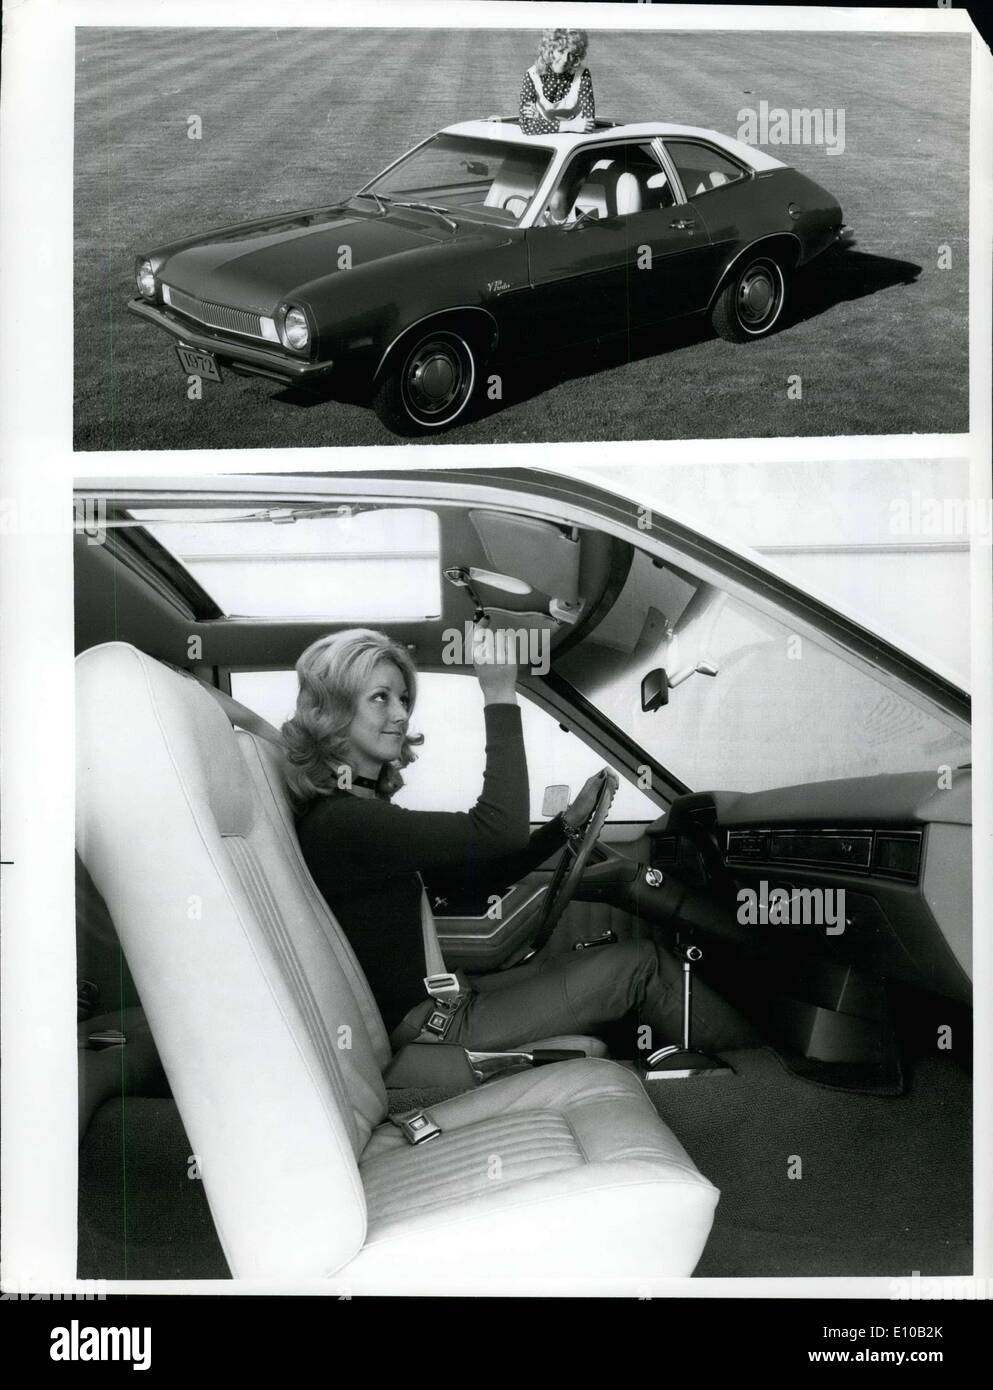 Feb. 24, 1972 - Pinto Sunroof ? A sliding metal sunroof, a popular option on the Thunderbird and standard-sized Ford, now is offered on the Ford Pinto. It is available with or without optional vinyl roof, and it covers the front passenger compartment. It is manually operated by a crank which is recessed in the headliner when not in use. - Stock Image